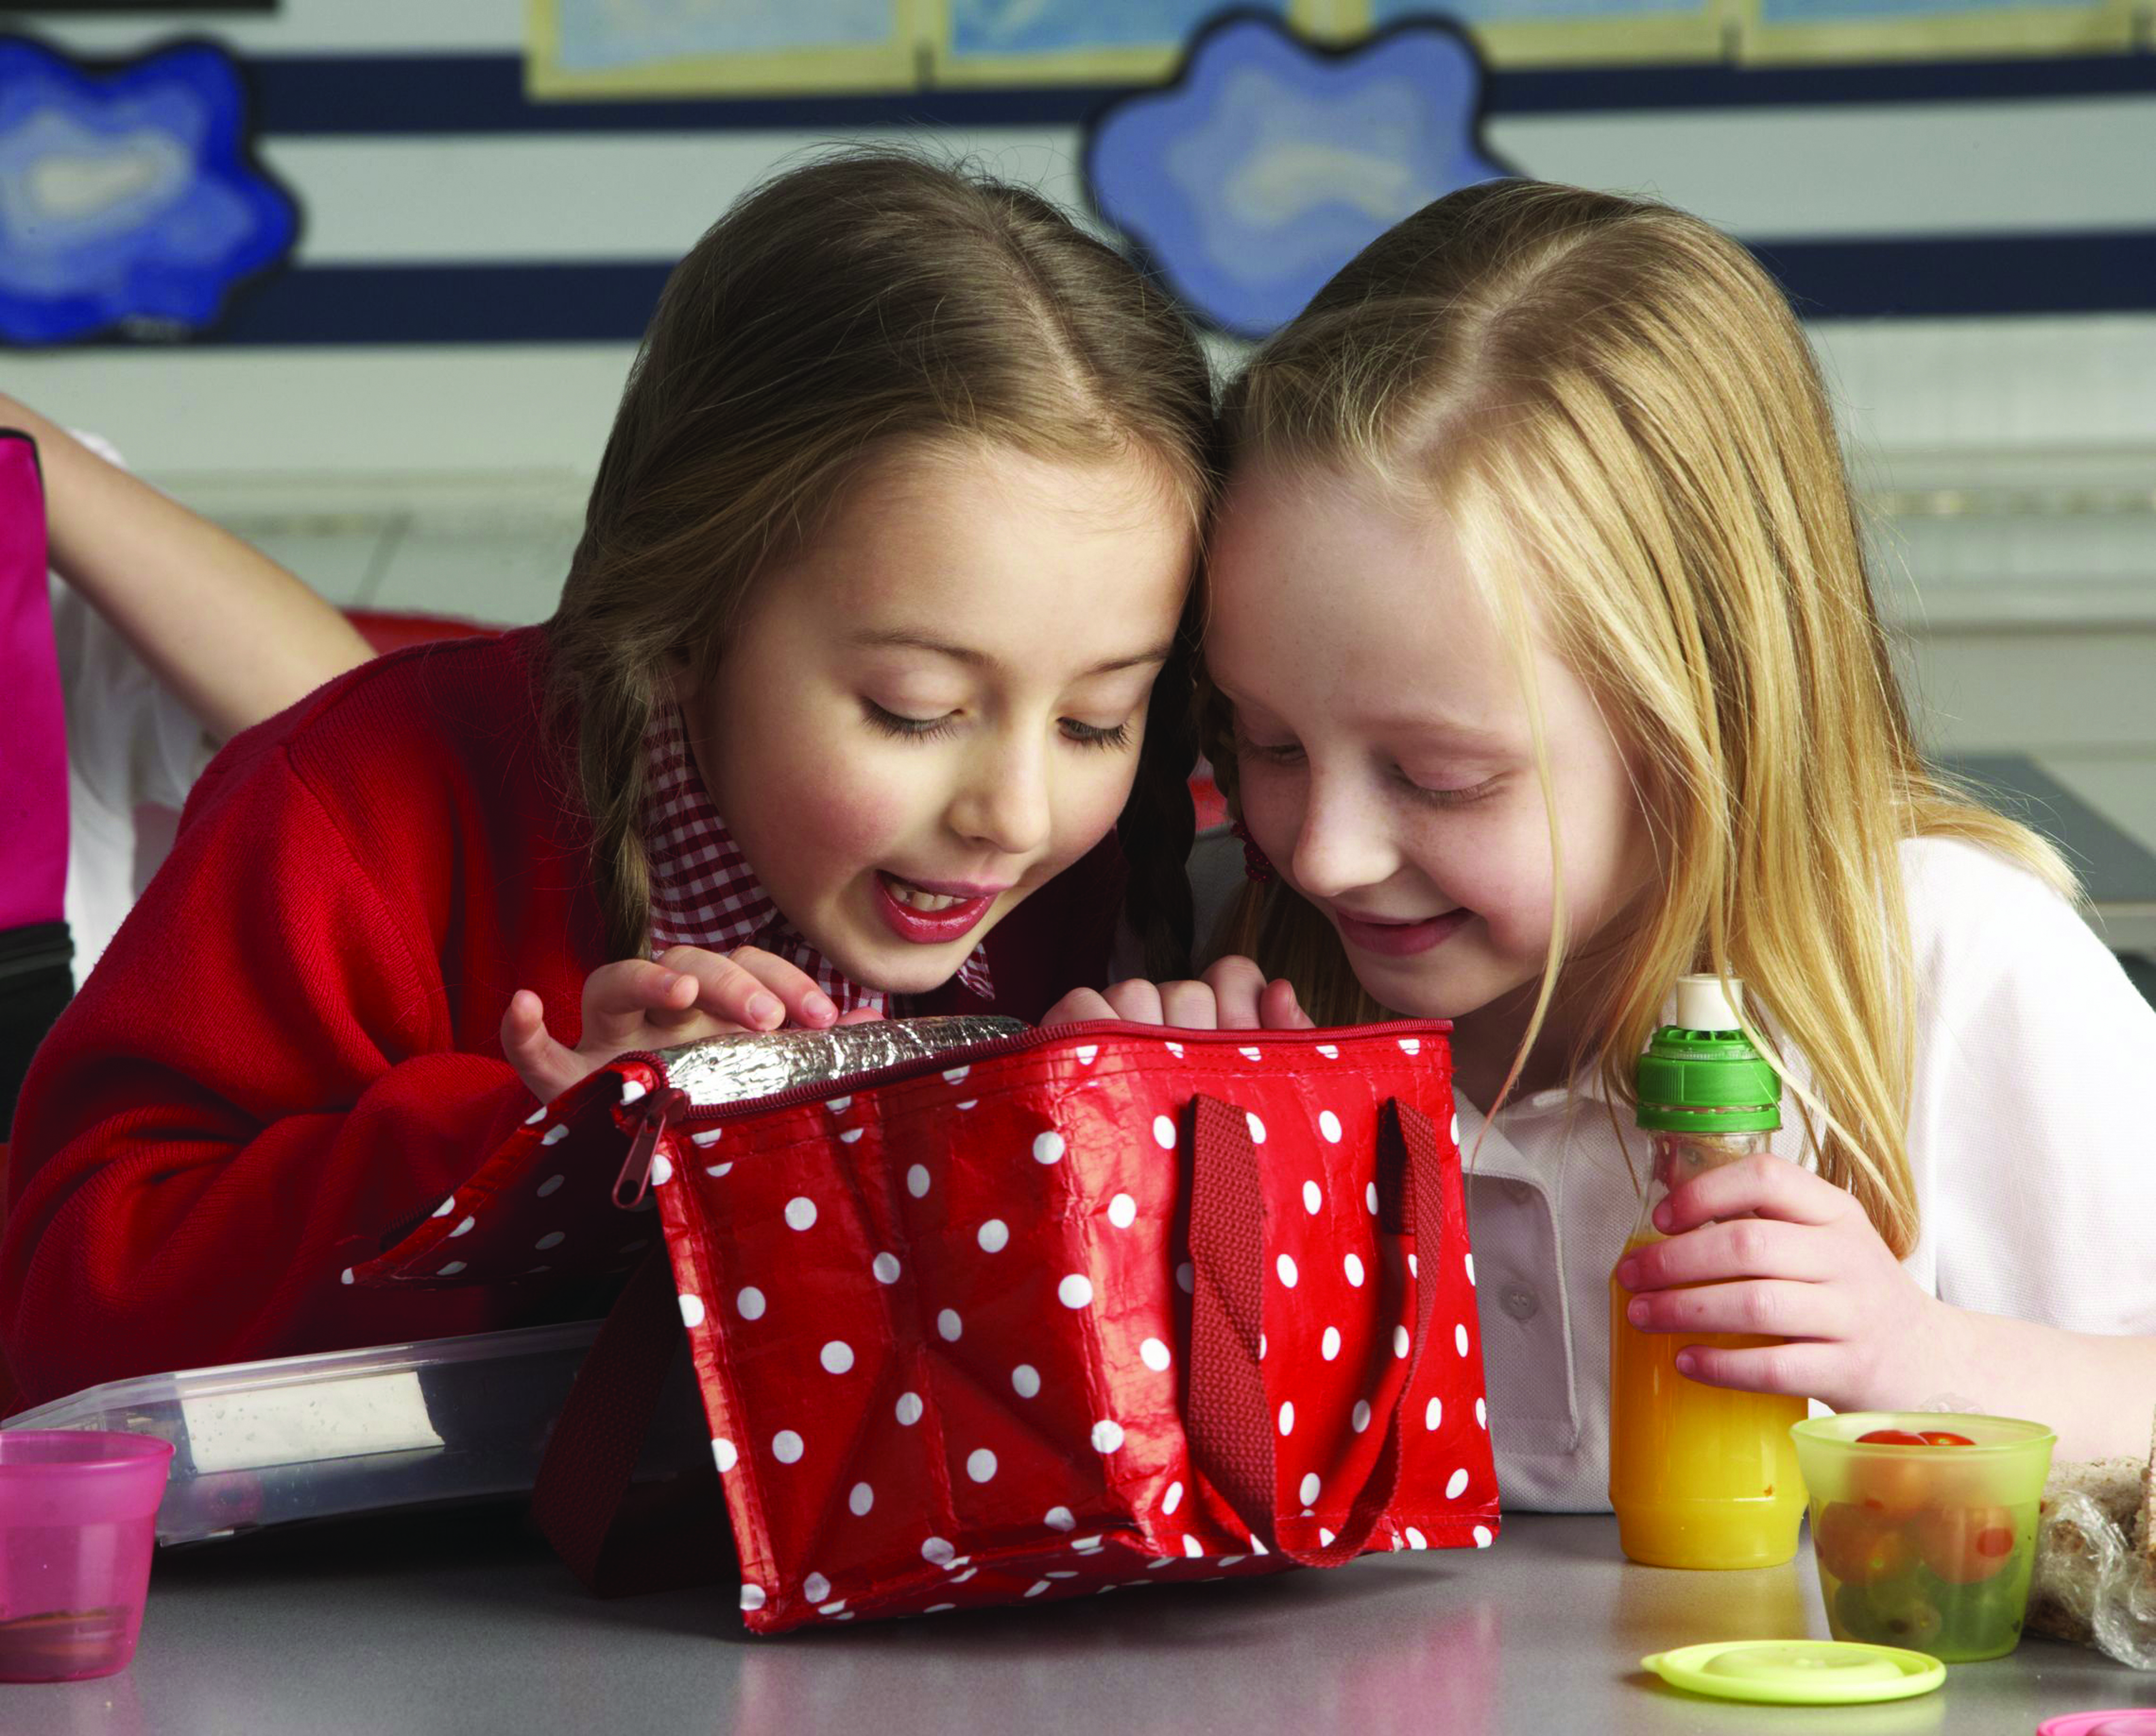 two young girls eating lunch at school